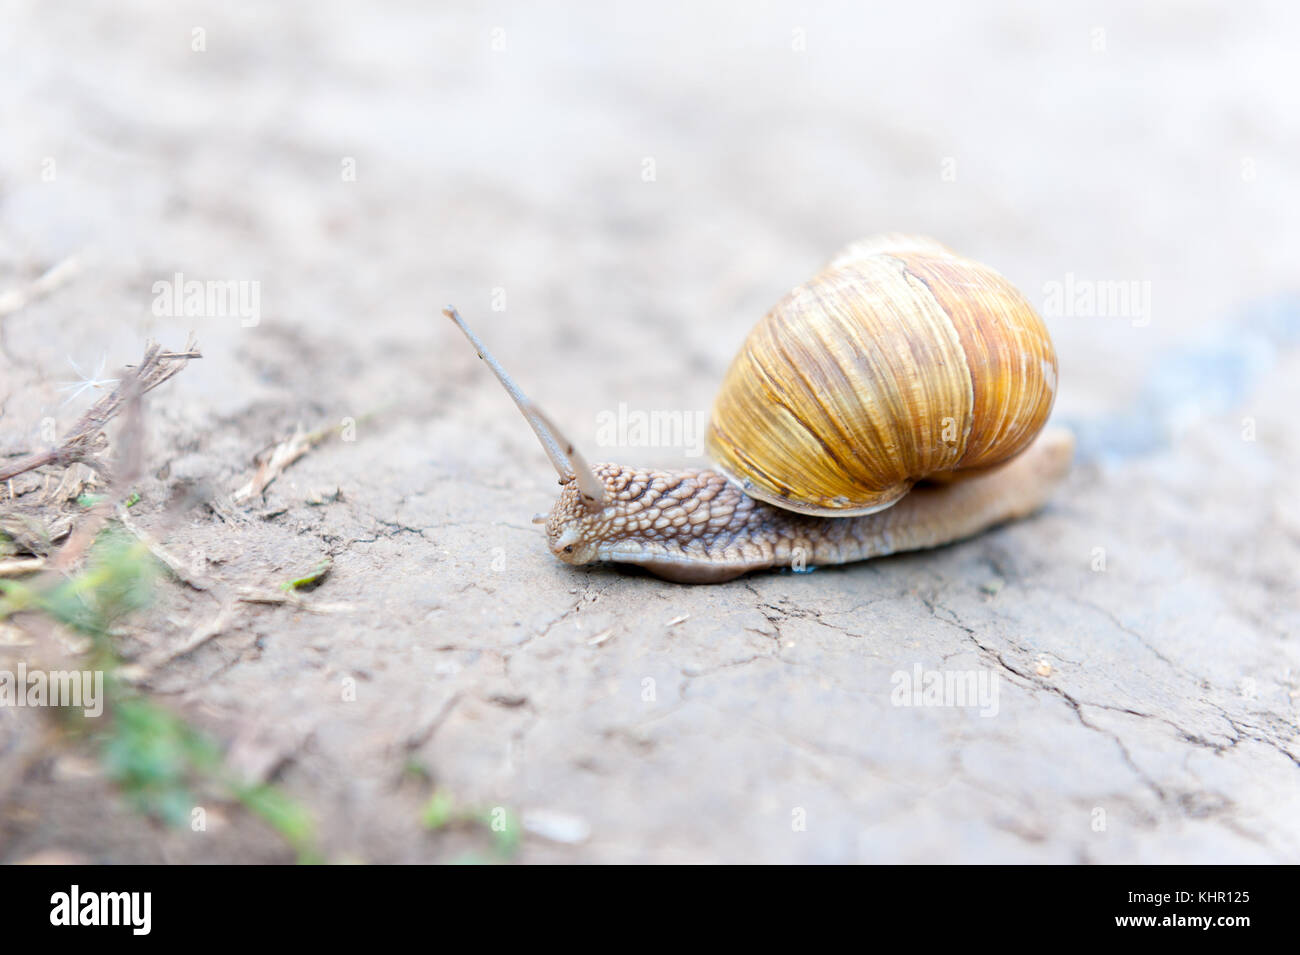 Snail crawling on the path Stock Photo